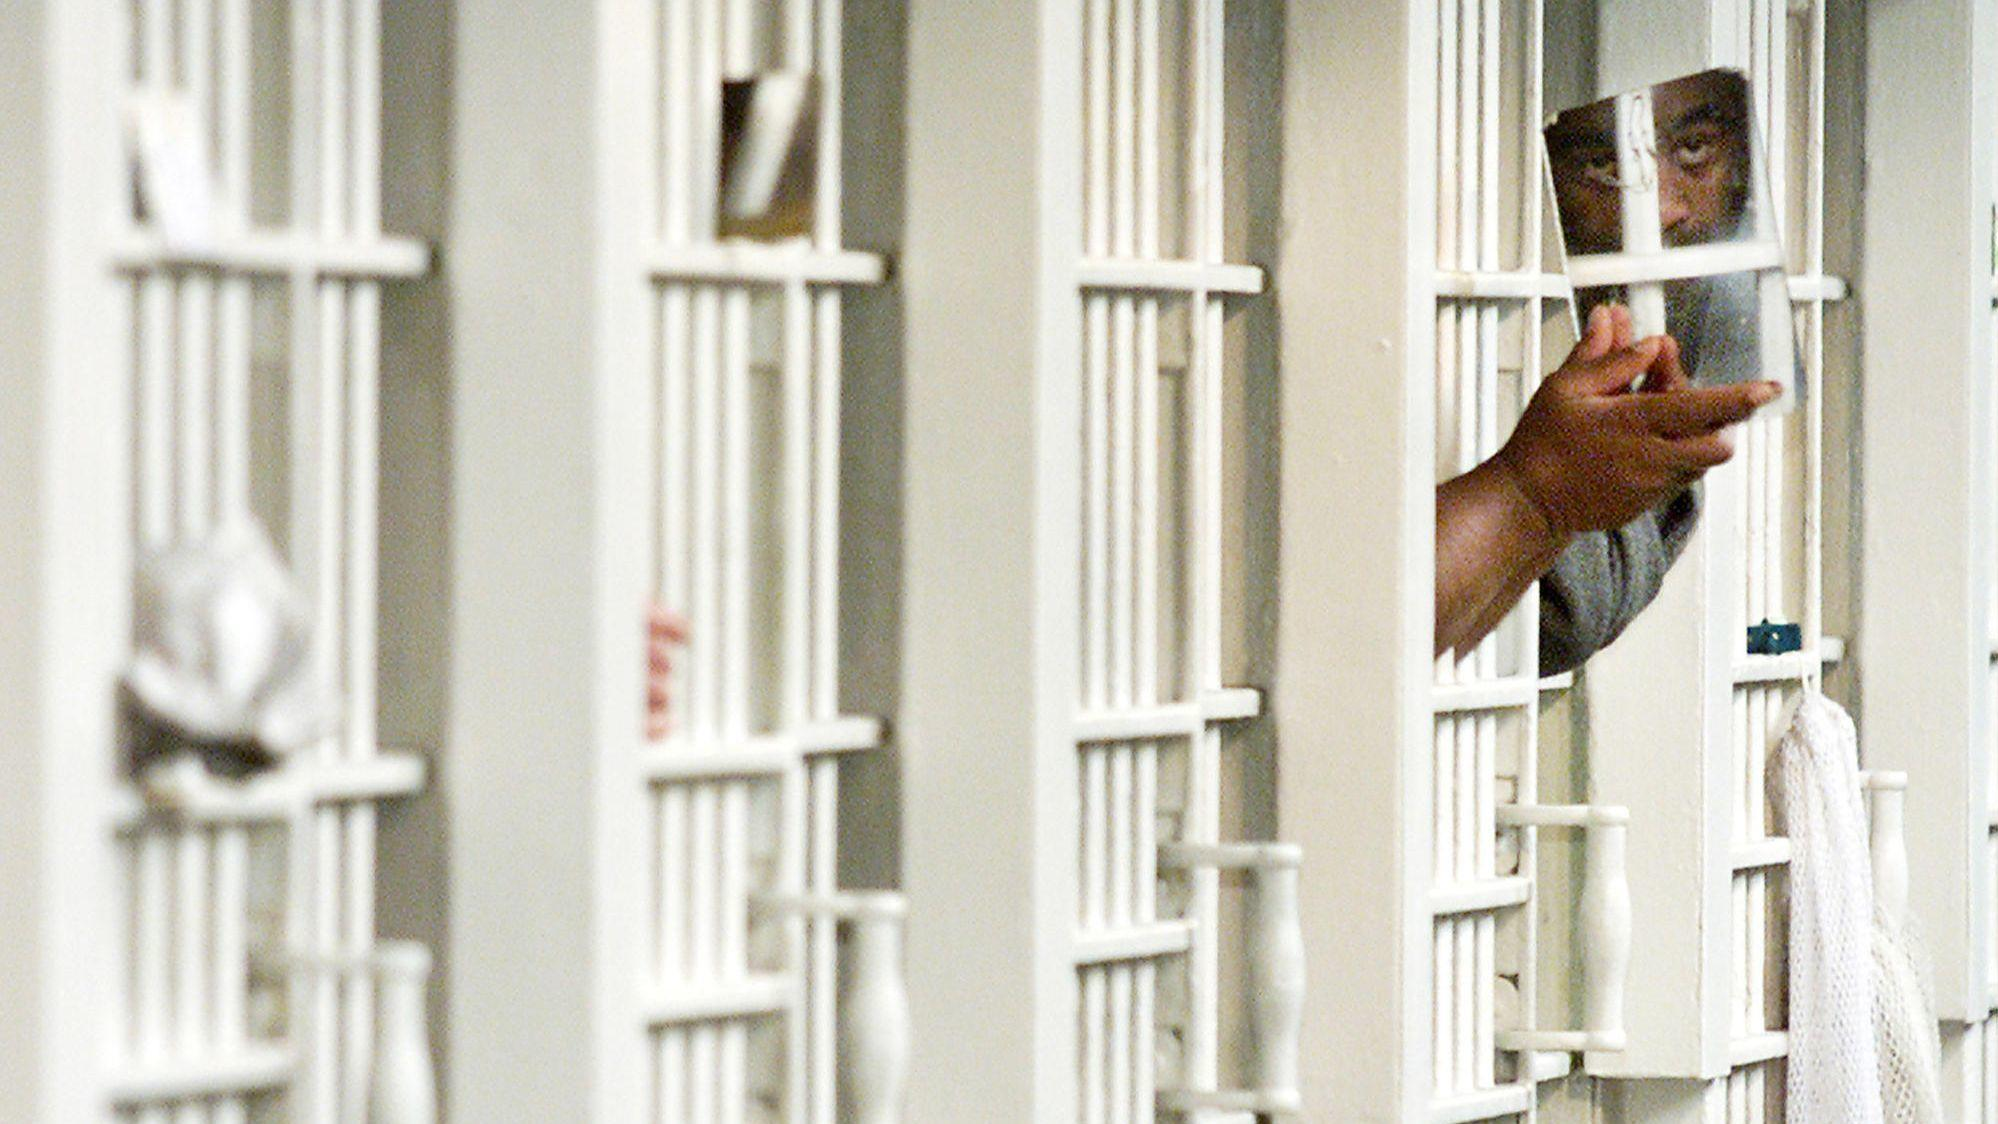 Maryland's prison population drops to 1980s levels, continuing a multi-year decline